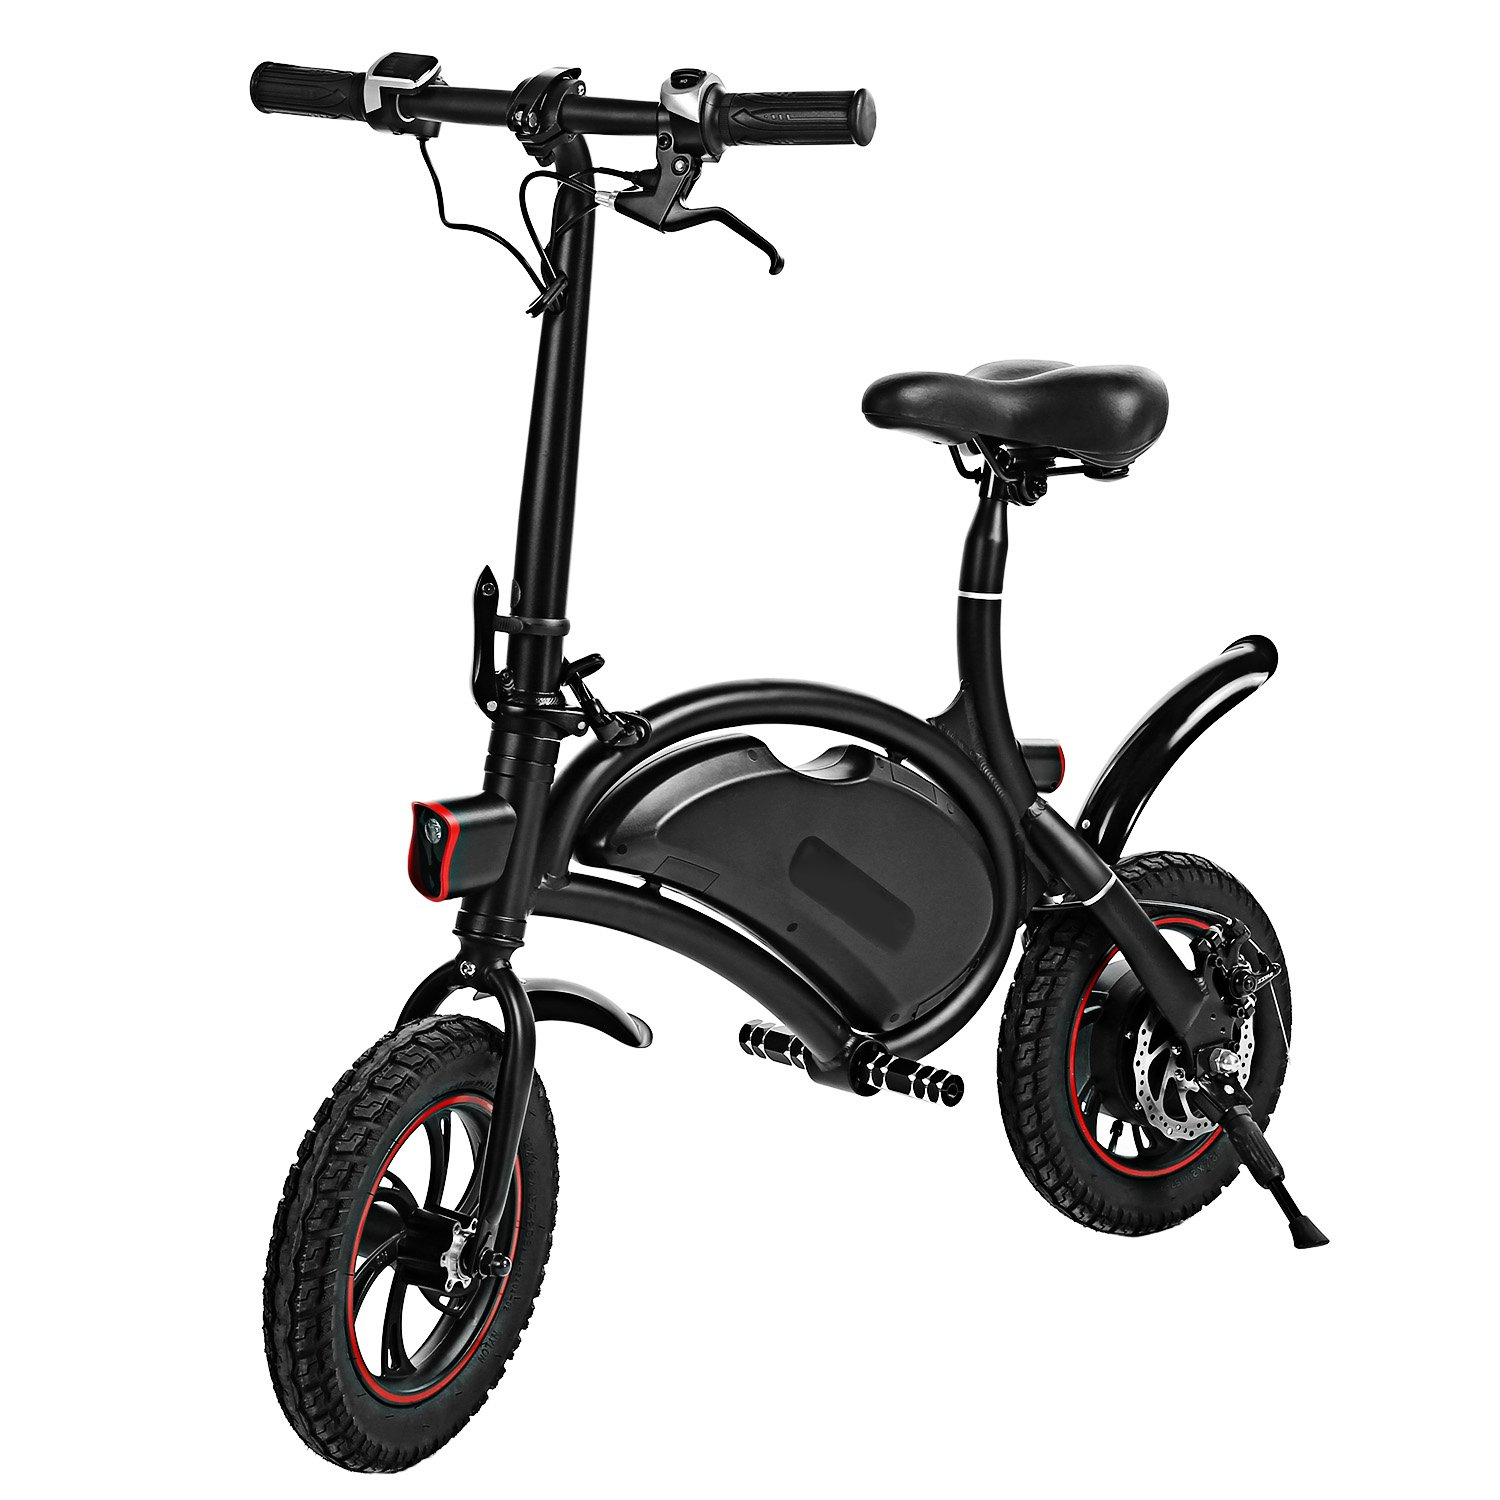 shaofu Folding Electric Bicycle 350W 36V Waterproof E-Bike with 15 Mile Range, Collapsible Frame, and APP Speed Setting